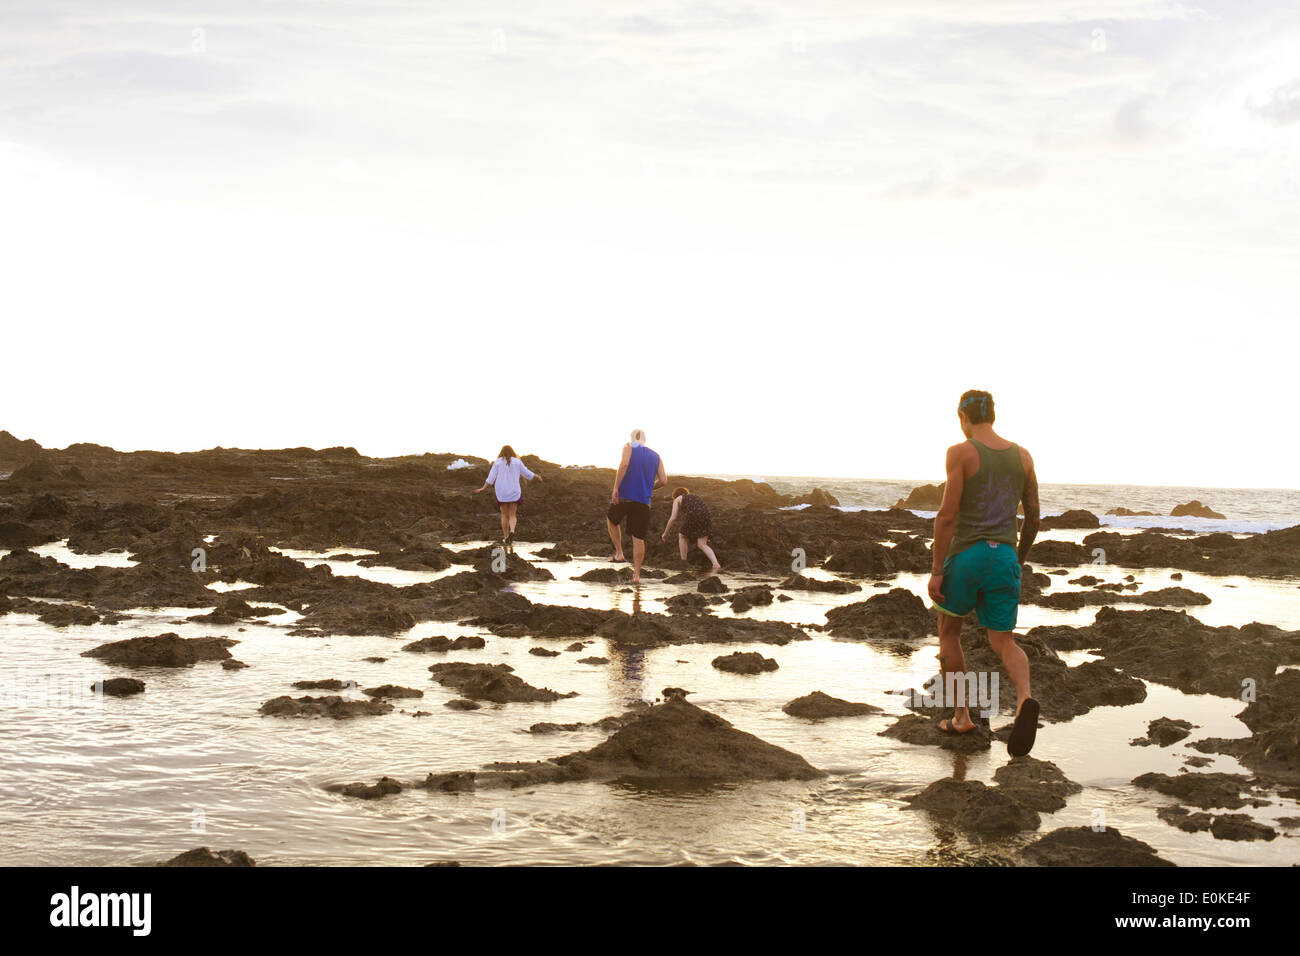 People explore Costa Rica's tropical tidal pools in the afternoon sunlight. - Stock Image